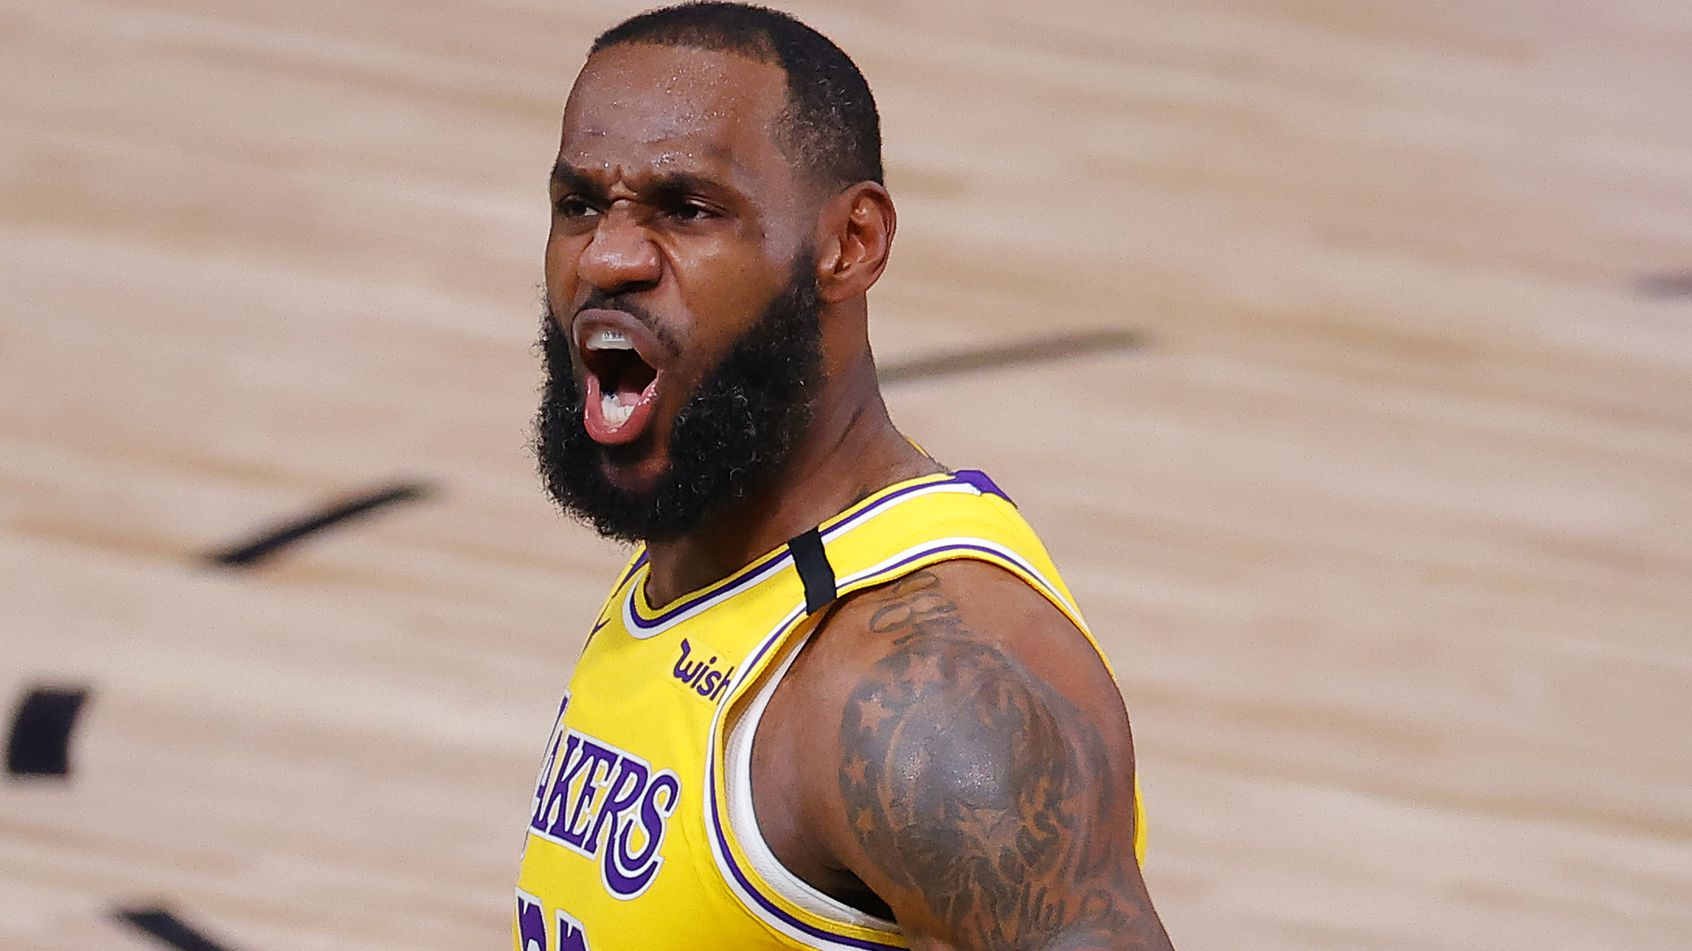 LeBron James of the Los Angeles Lakers reacts after a dunk.